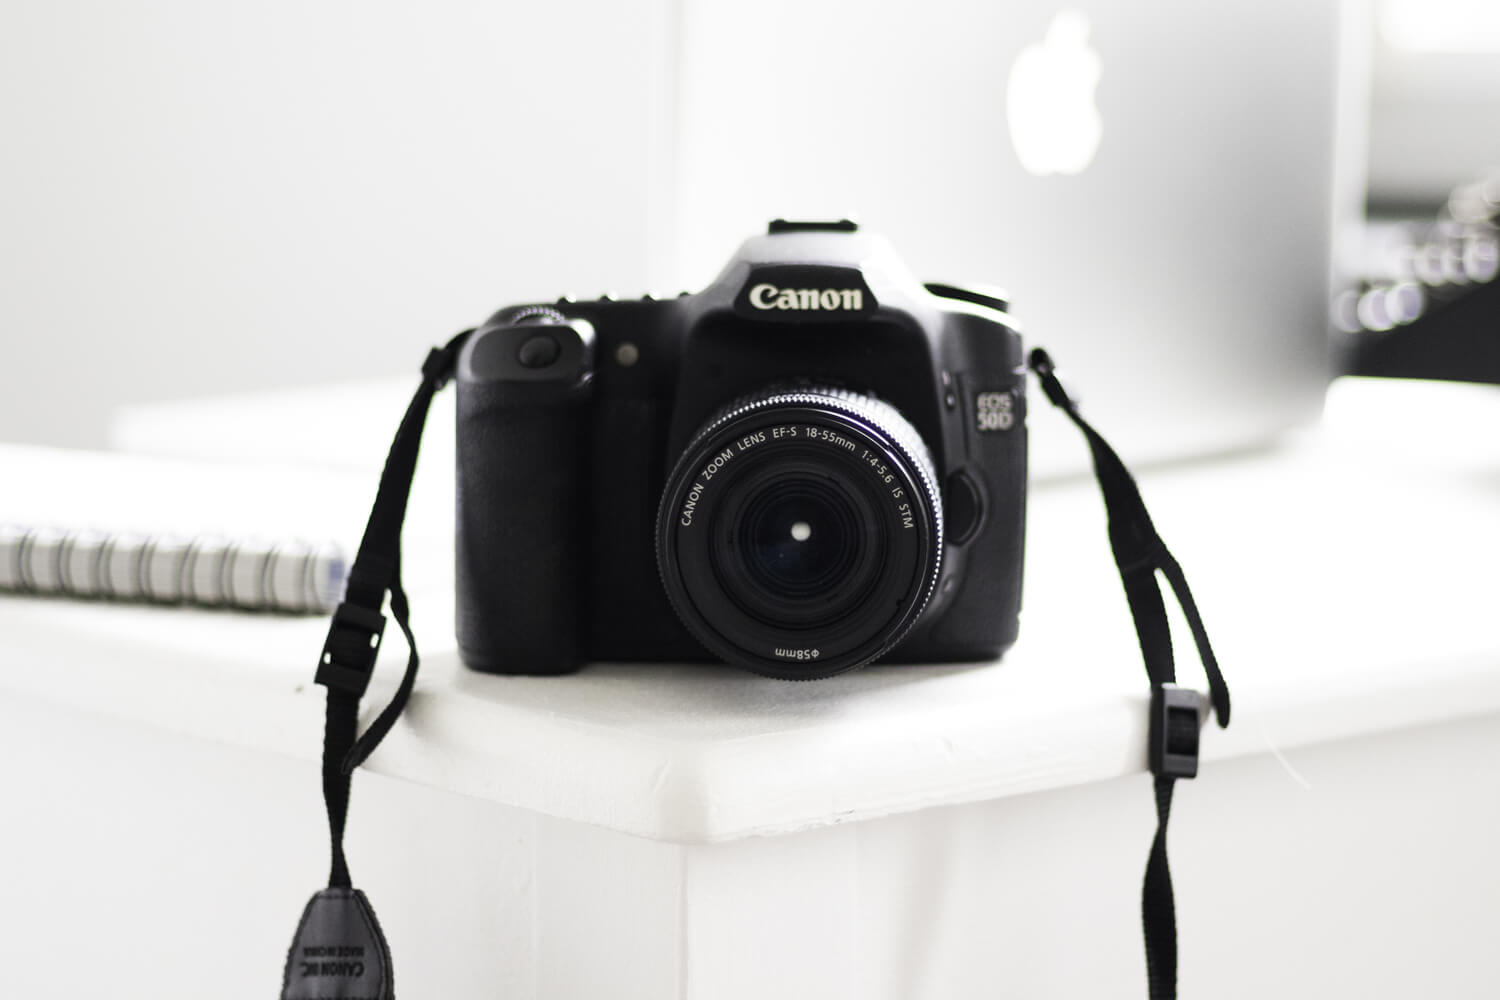 A Canon 60D camera on a desk